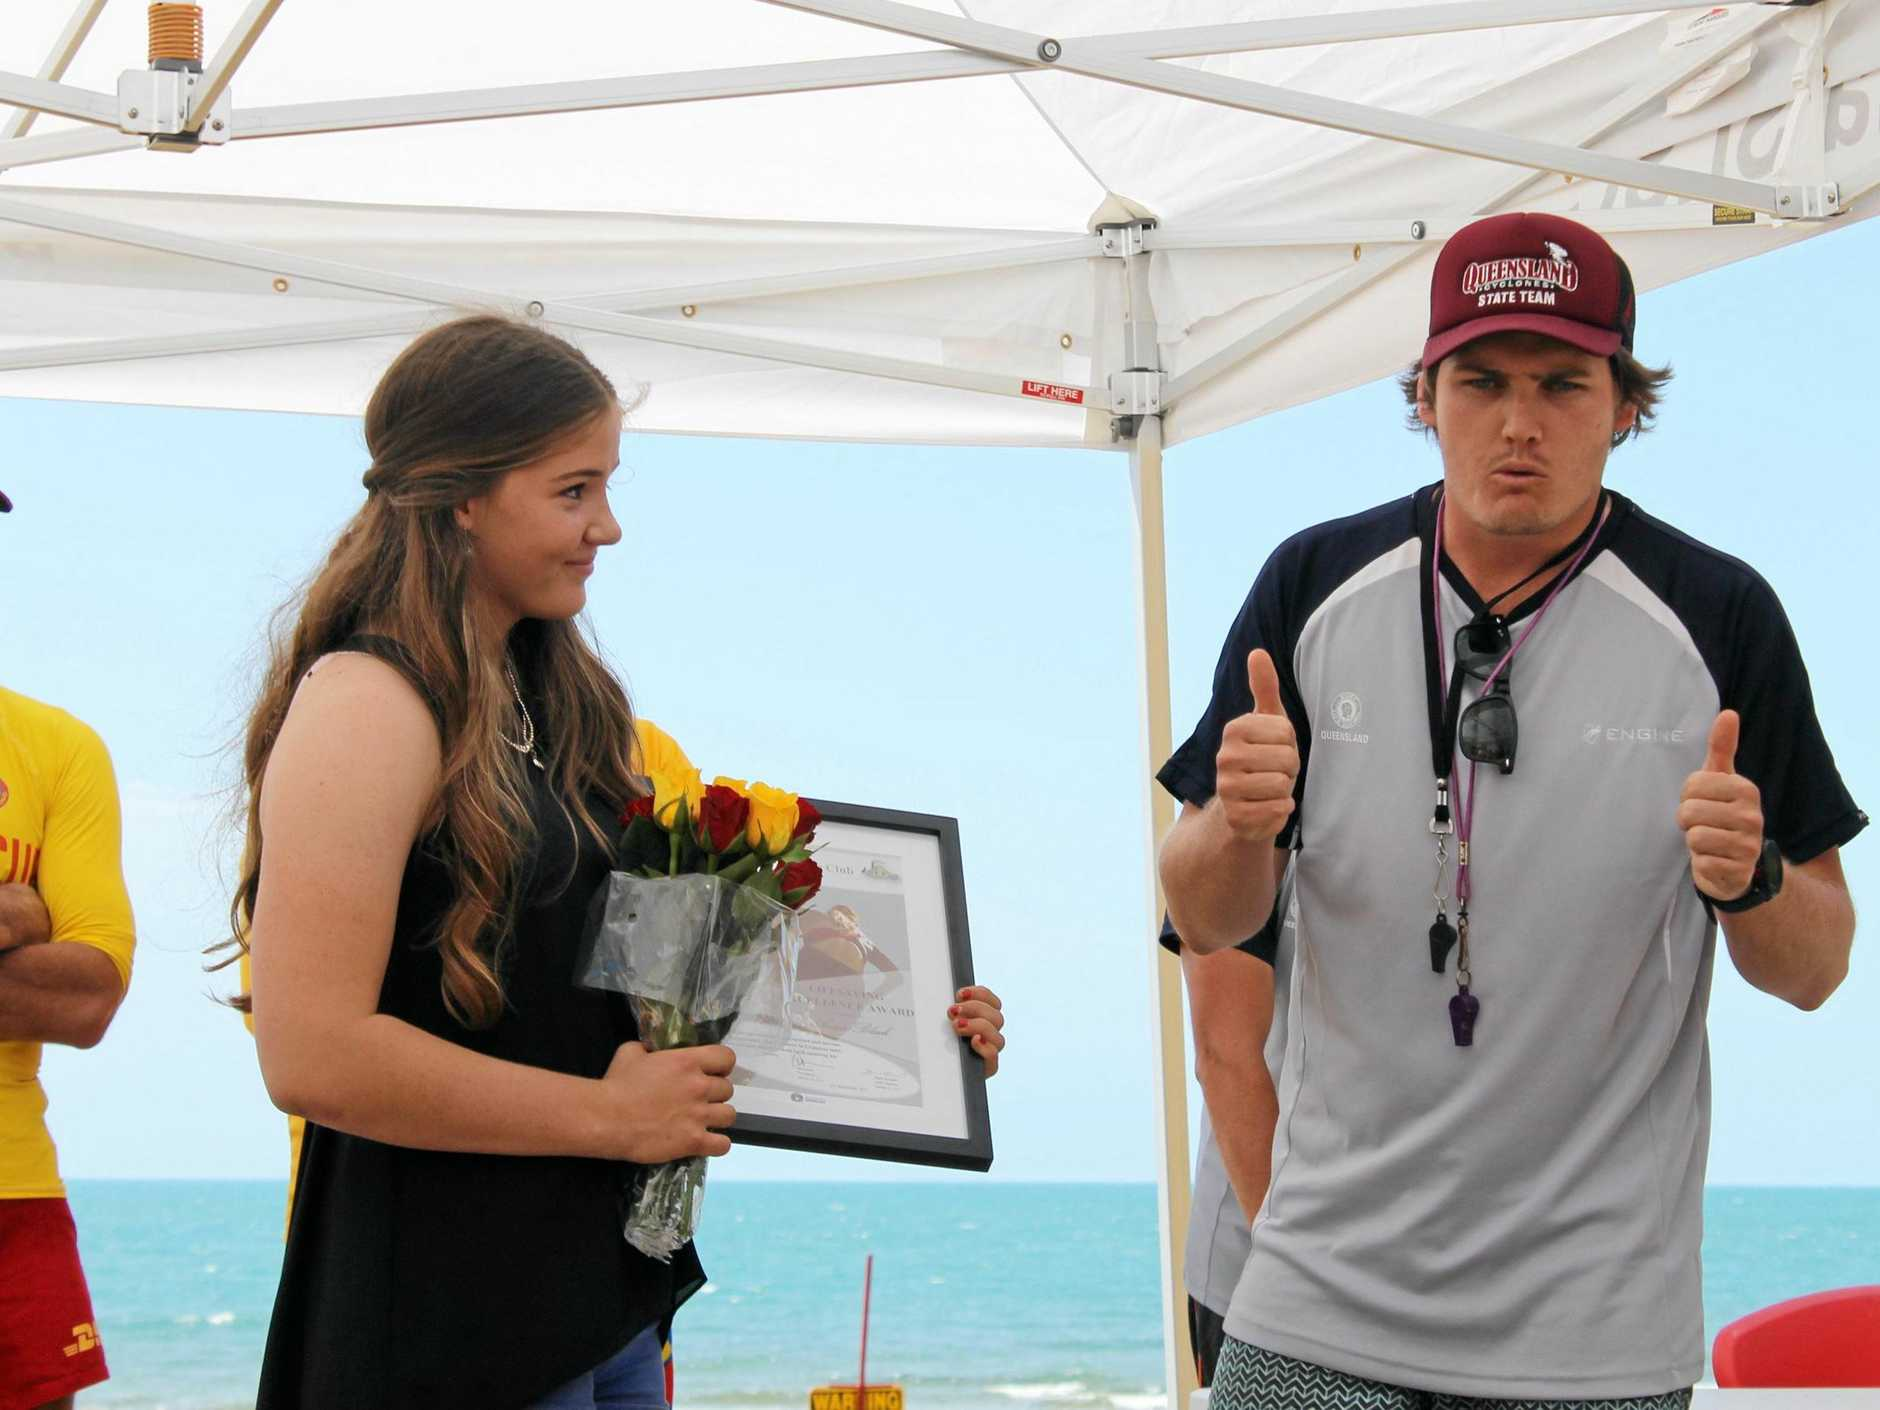 Grasstree Beach's Anna Black, 15, from Sarina Surf Lifesaving Club received a Lifesaving Excellence Award, presented by Matthew Palmer (SLSQ sport development coordinator) for saving a man who was in serious trouble after his kayak capsized.